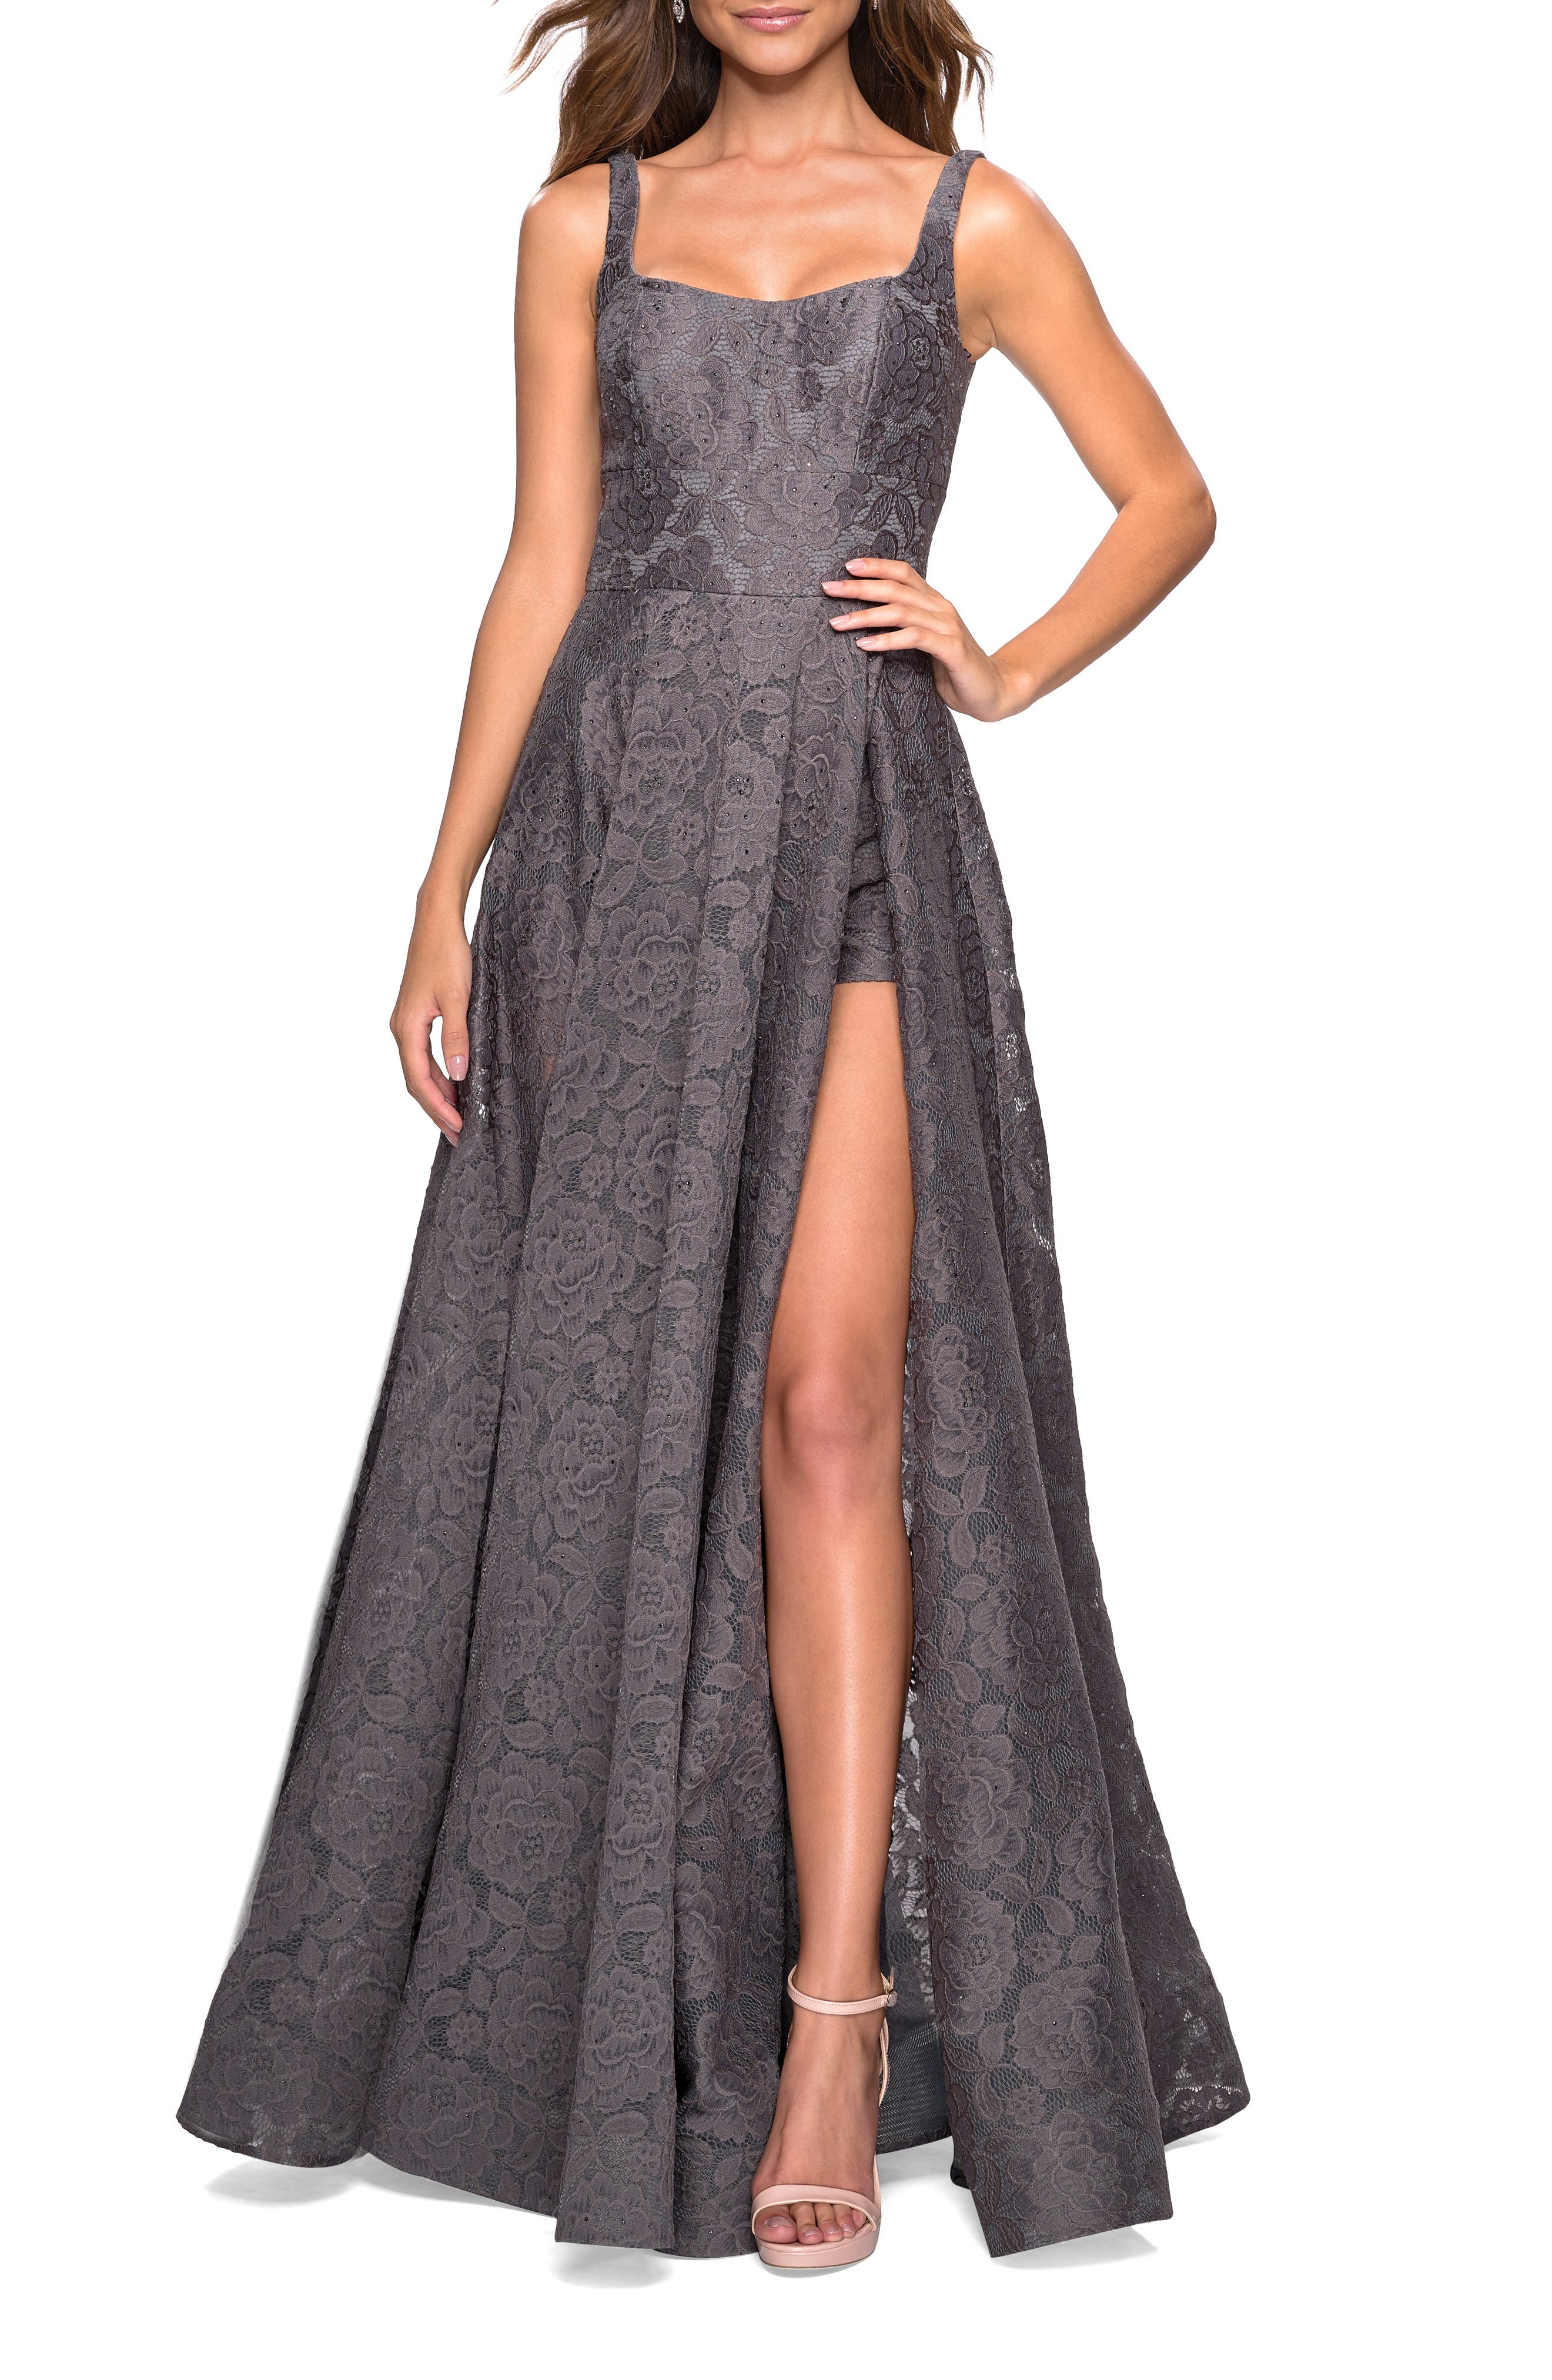 La Femme Front Slit Lace Evening Dress, Grey